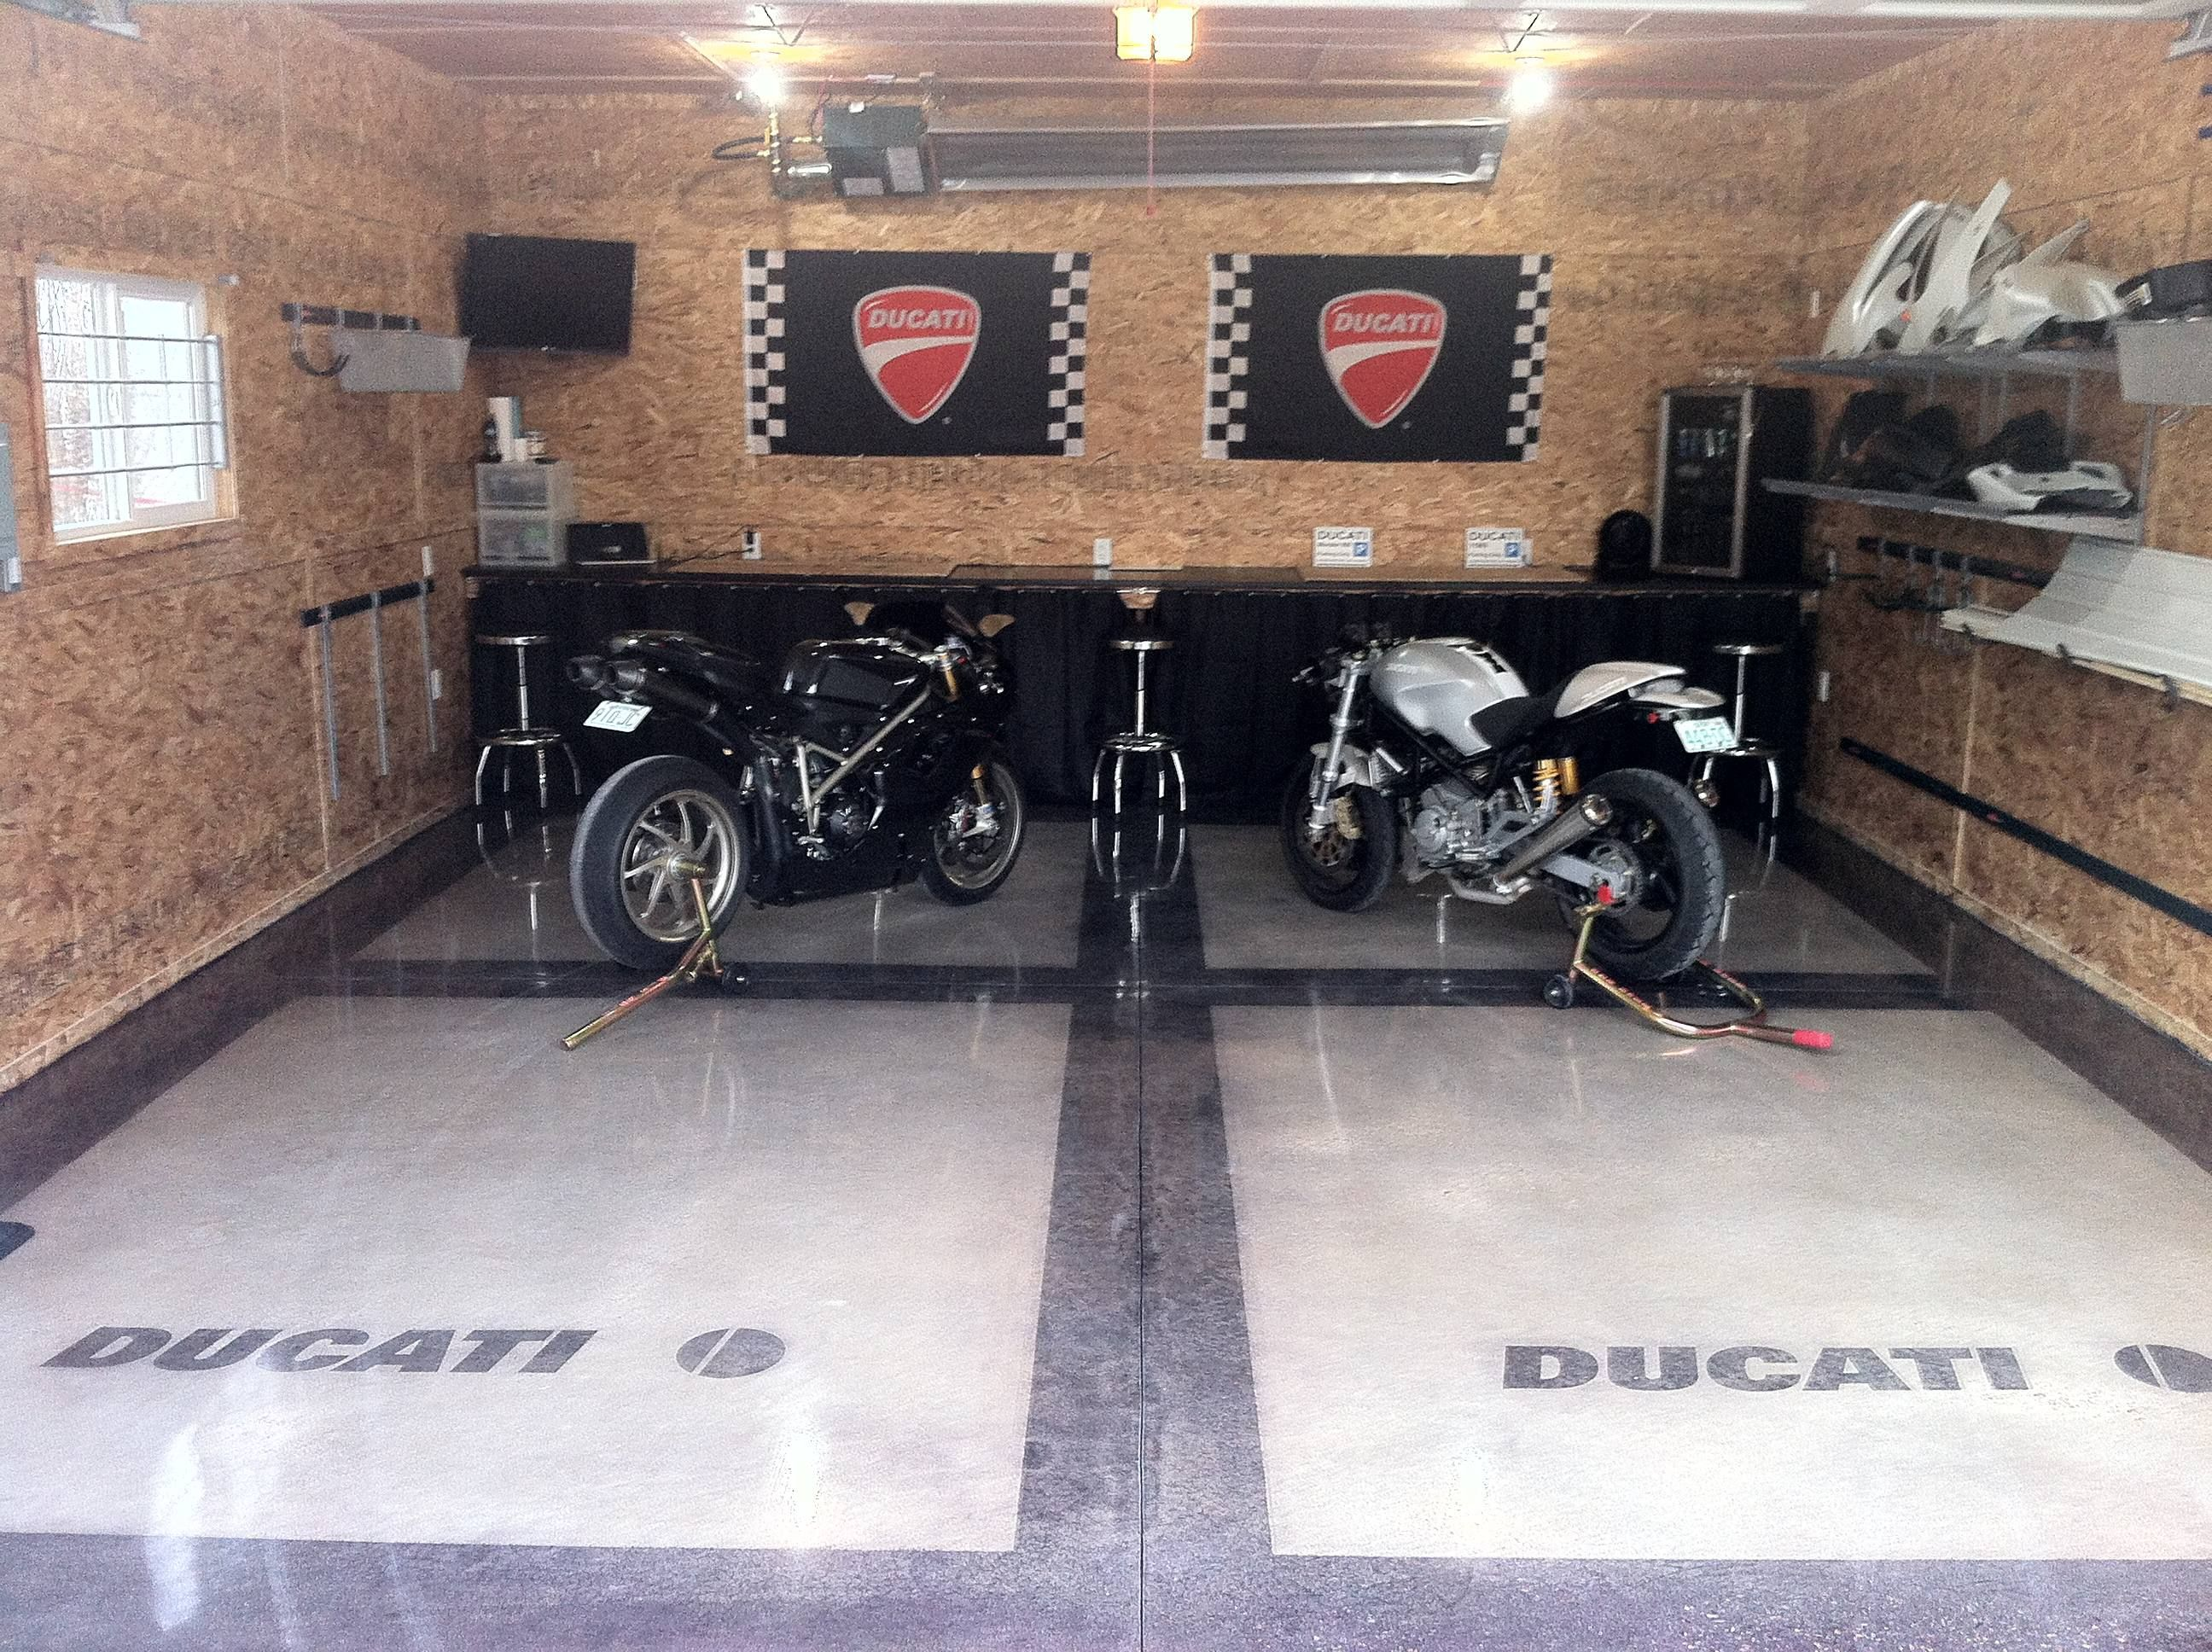 Detached Garage Man Cave Ideas : Garage man cave ideas http ducati org